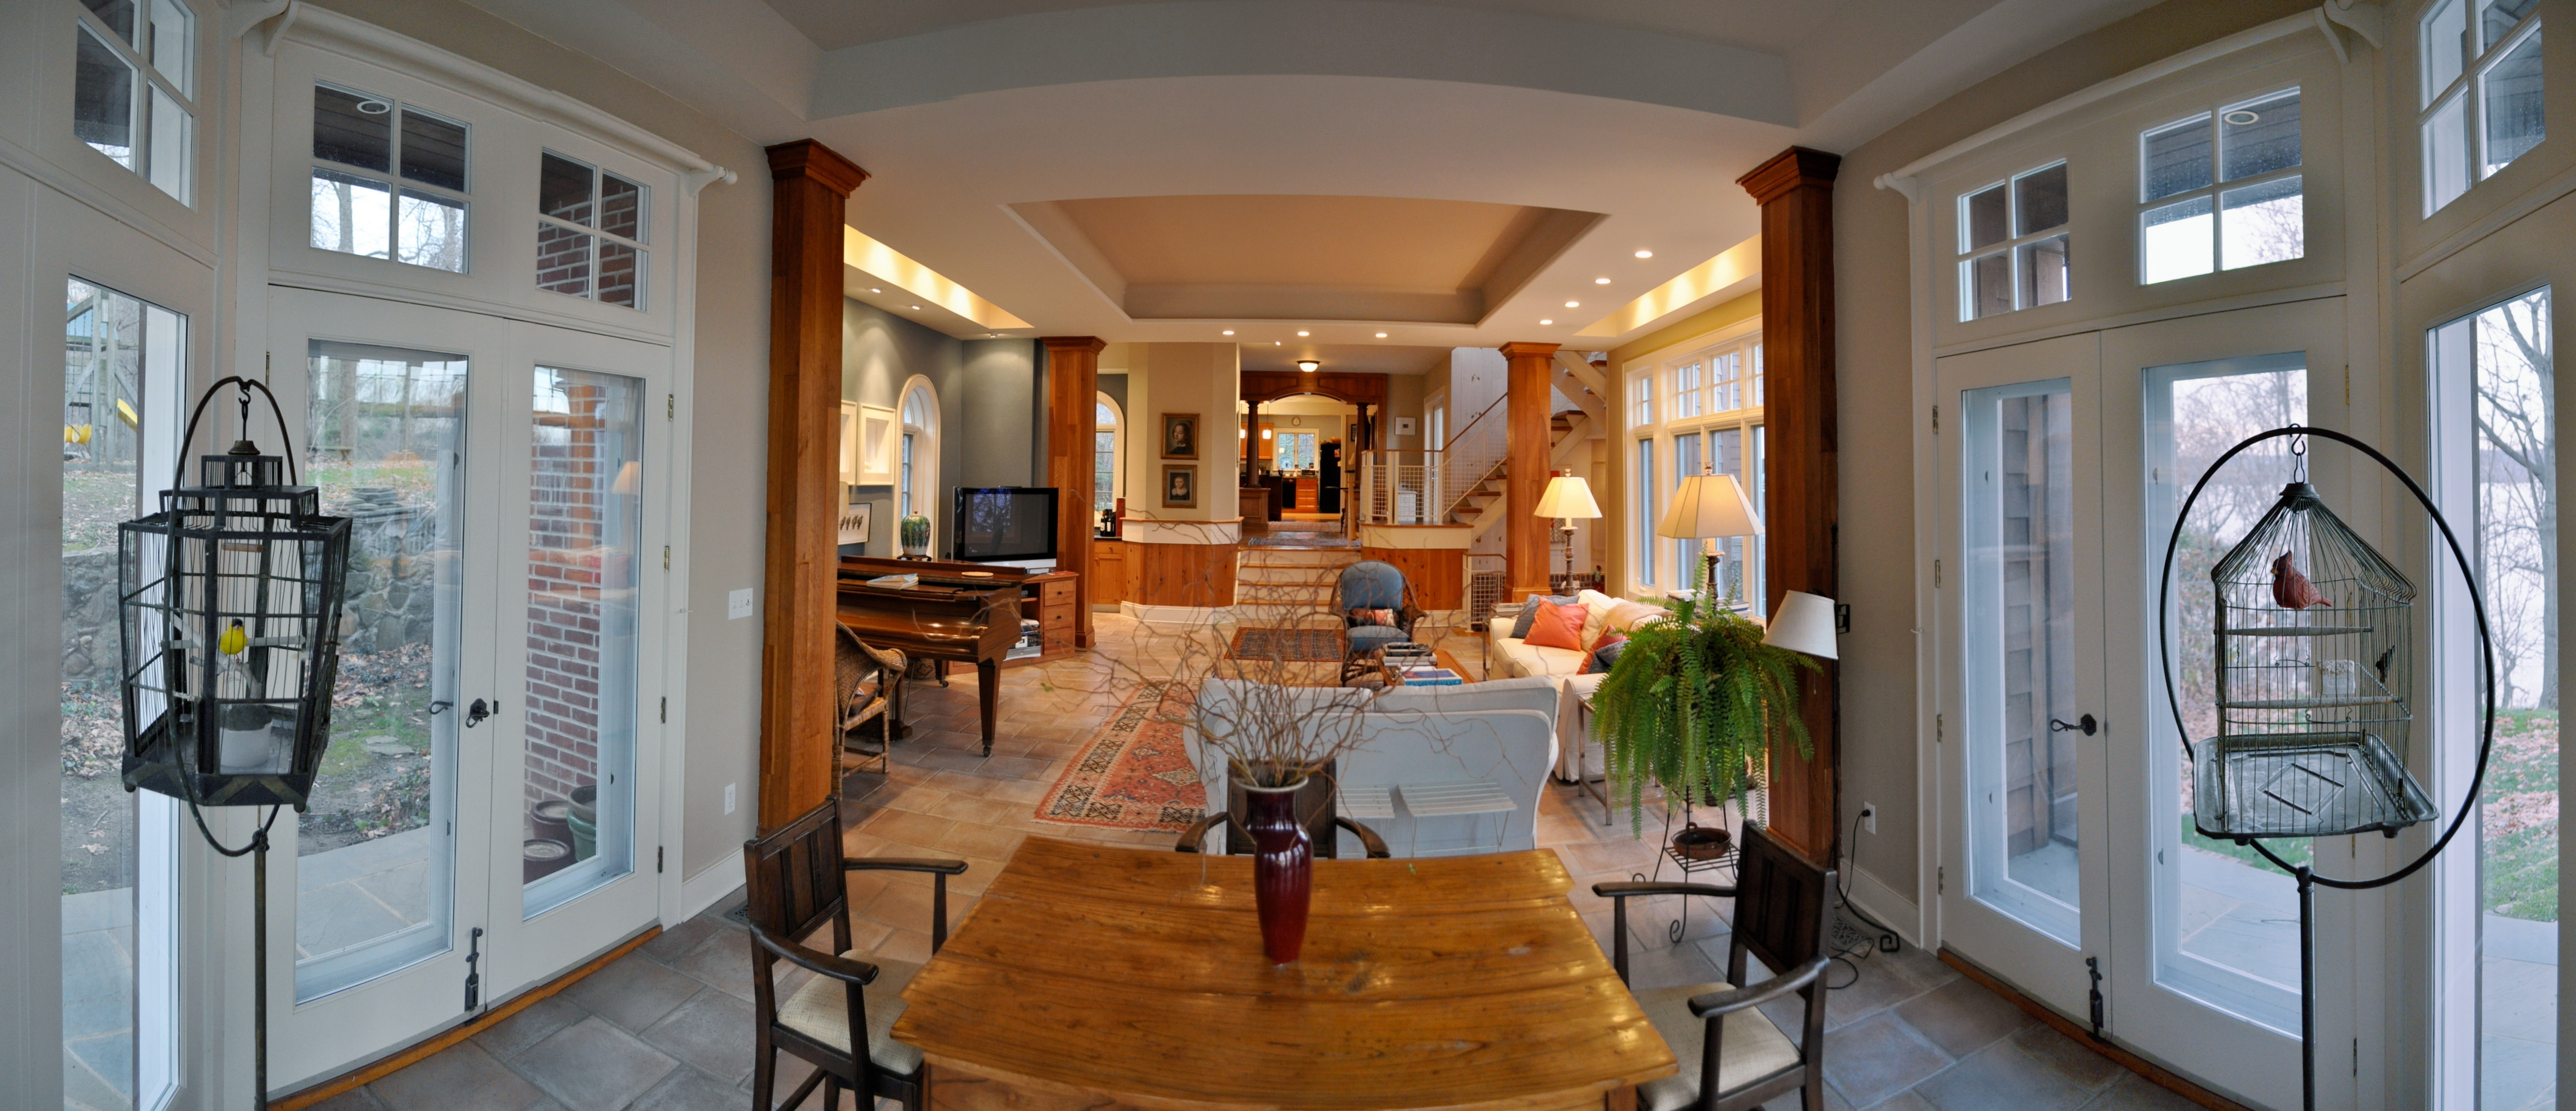 Real estate photograph of a living room set.